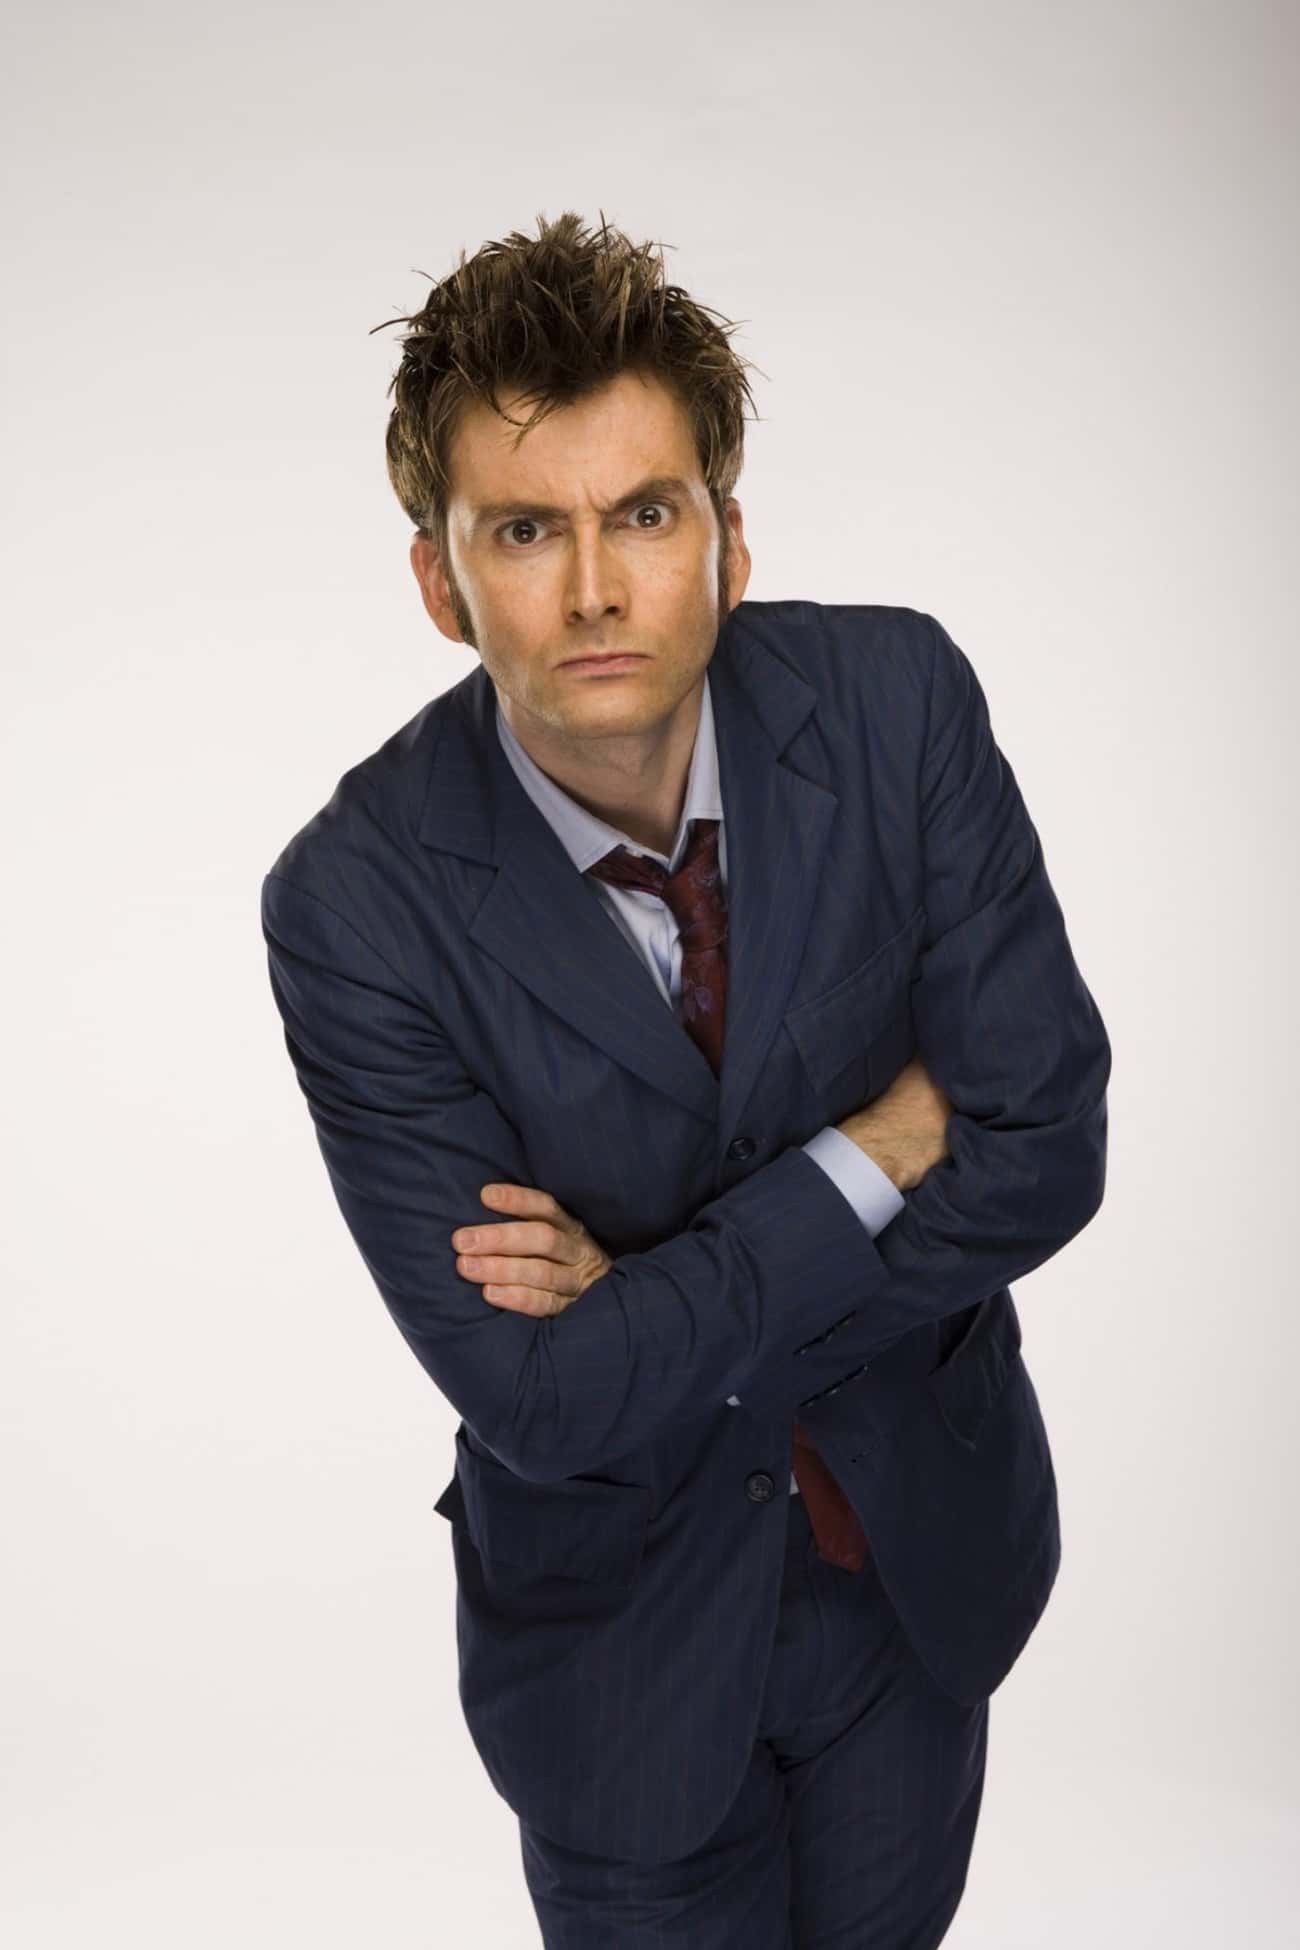 David Tennant in Suit Ned Jack is listed (or ranked) 4 on the list Hot David Tennant Photos